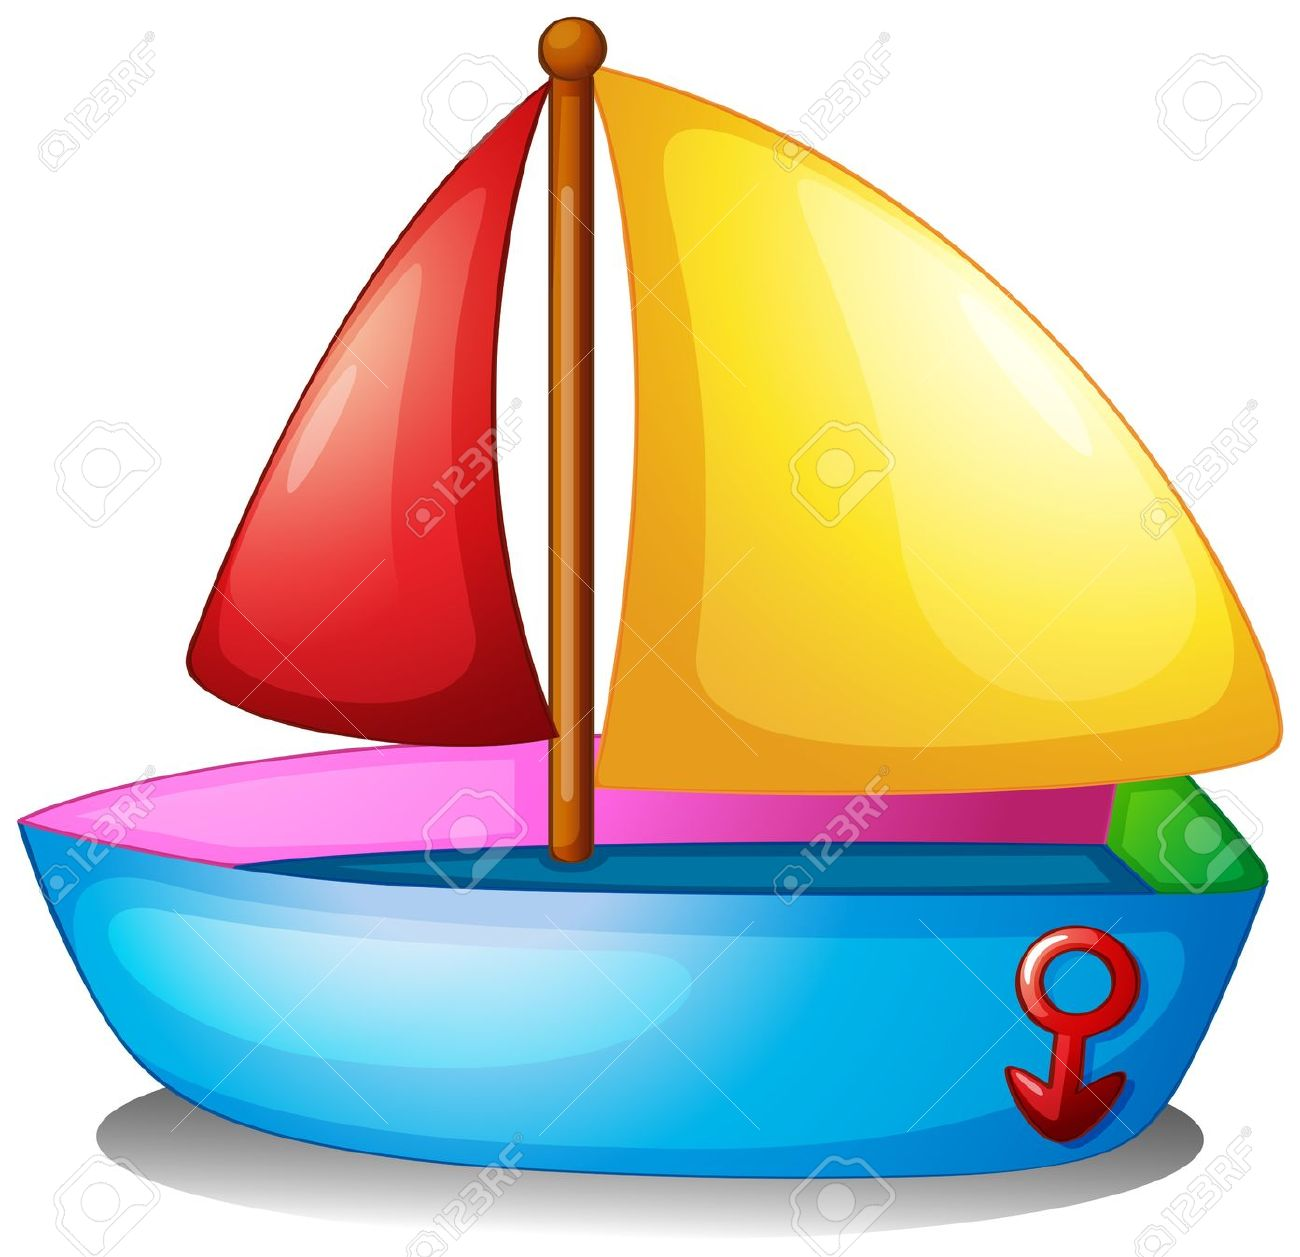 free sailboat clipart at getdrawings com free for personal use rh getdrawings com selling clipart on etsy selling clip art online